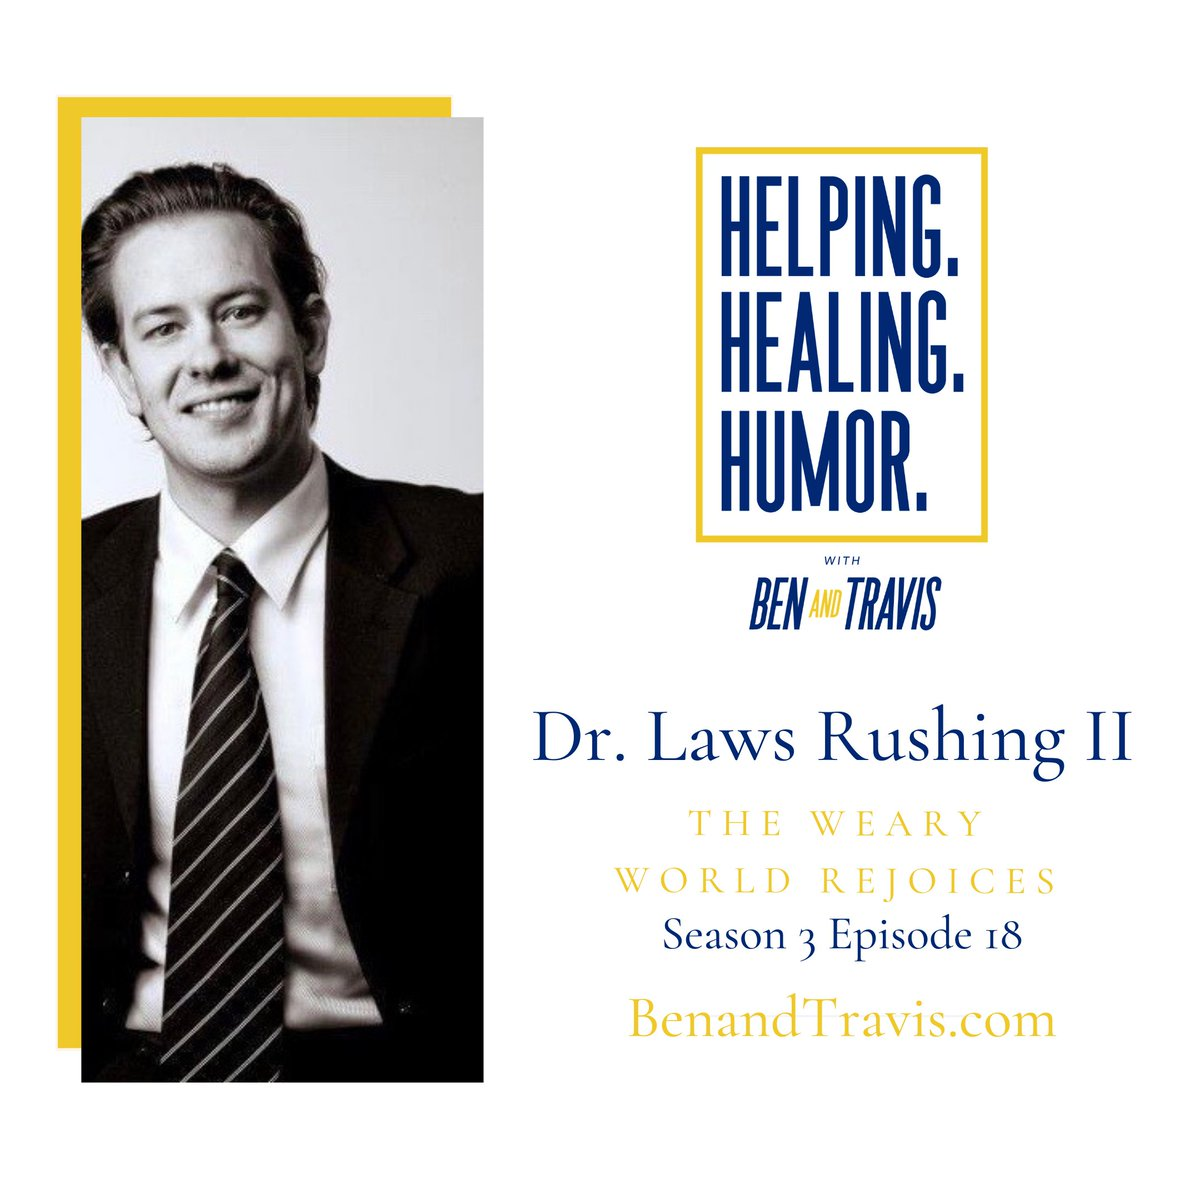 "Get the audio version of our newest podcast ""The Weary World Rejoices with Dr. Laws Rushing II"" Part 2: https://t.co/2ozk1a1a69 #Christmas #Advent #Christmas2020 #mentalhealth #MentalHealthAwareness #MentalHealthMatters #grateful #newpodcast #newpodcastalert #podcastlife #ebook https://t.co/wjH1TPCmkh"